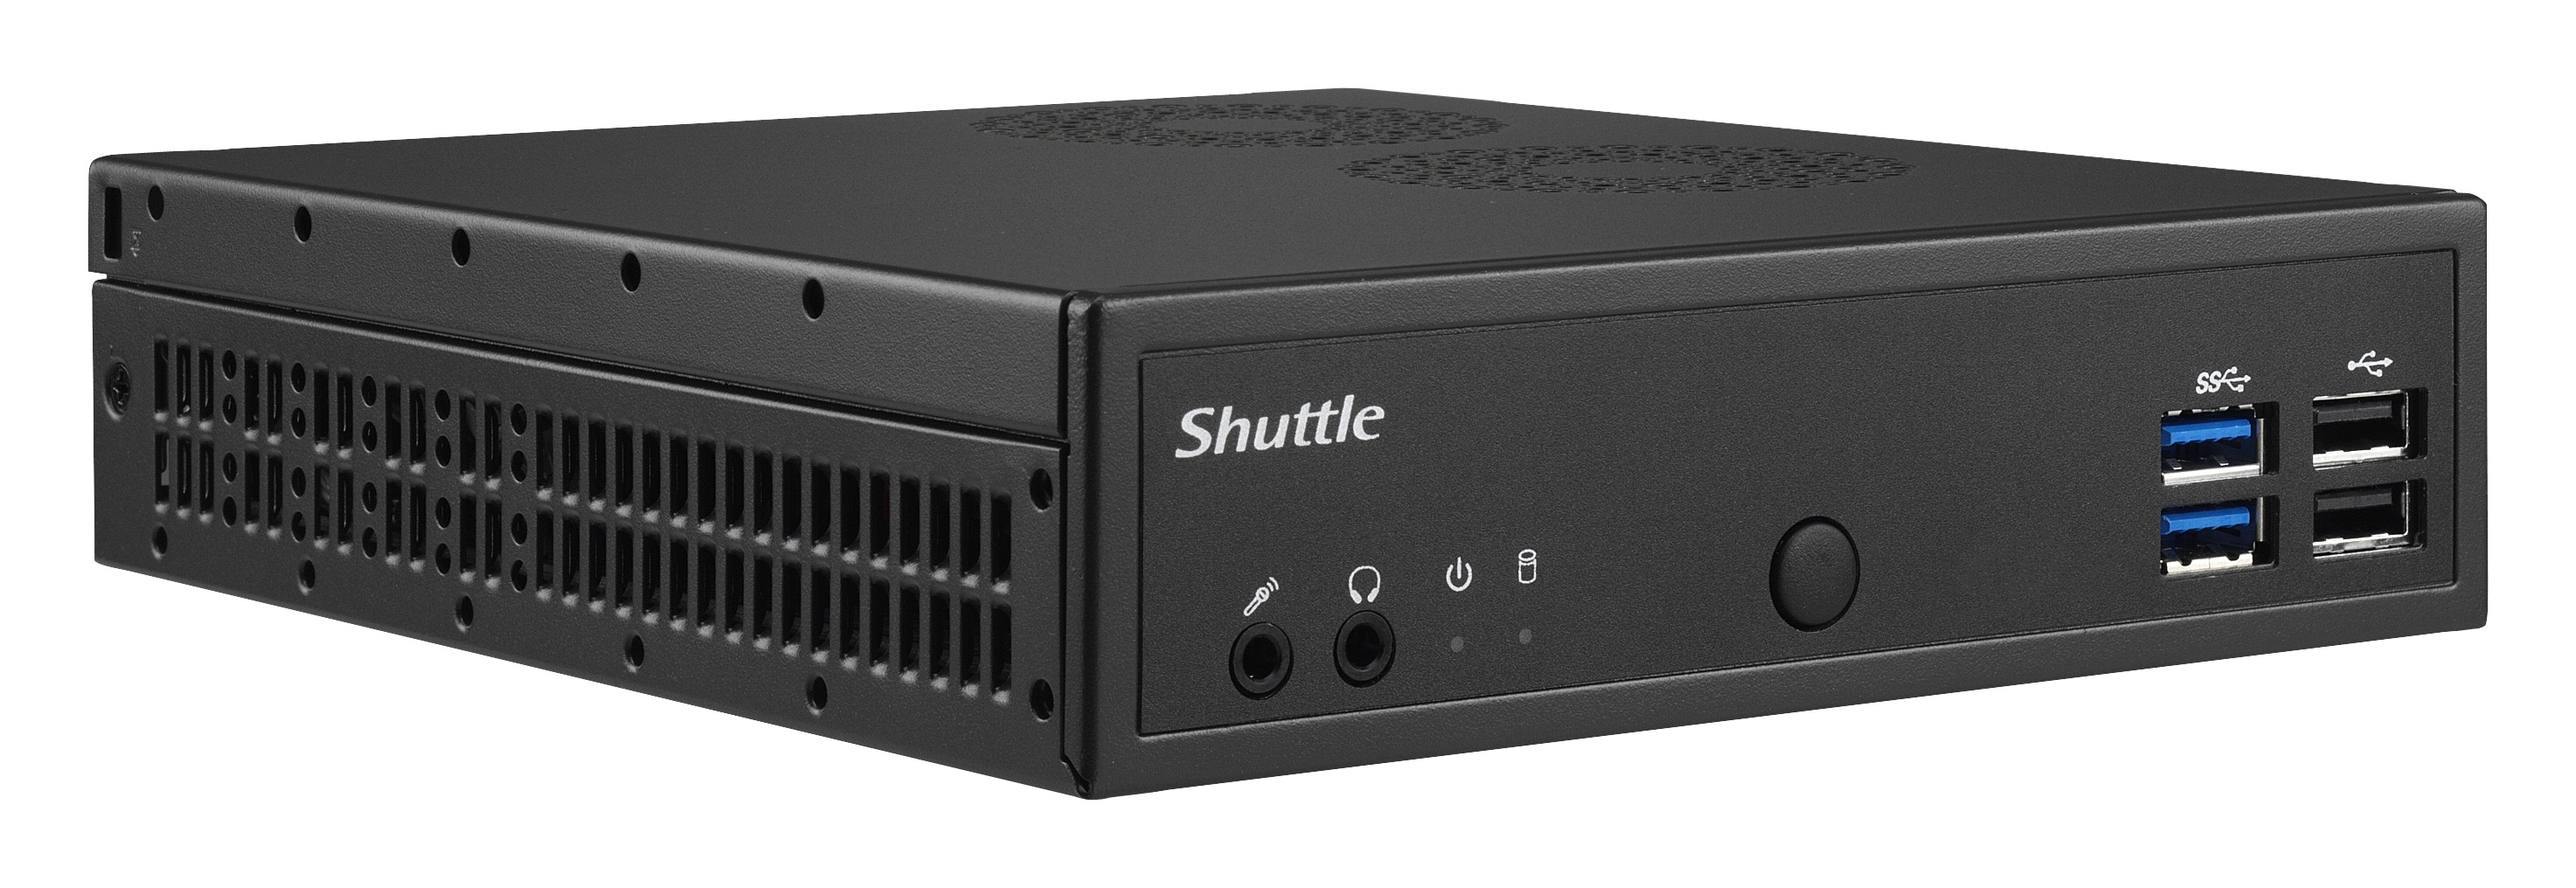 DH02U5 Shuttle XP? slim DH02U5 BGA 1356 2.5GHz i5-7200U Black PC/workstation barebone - Ent01